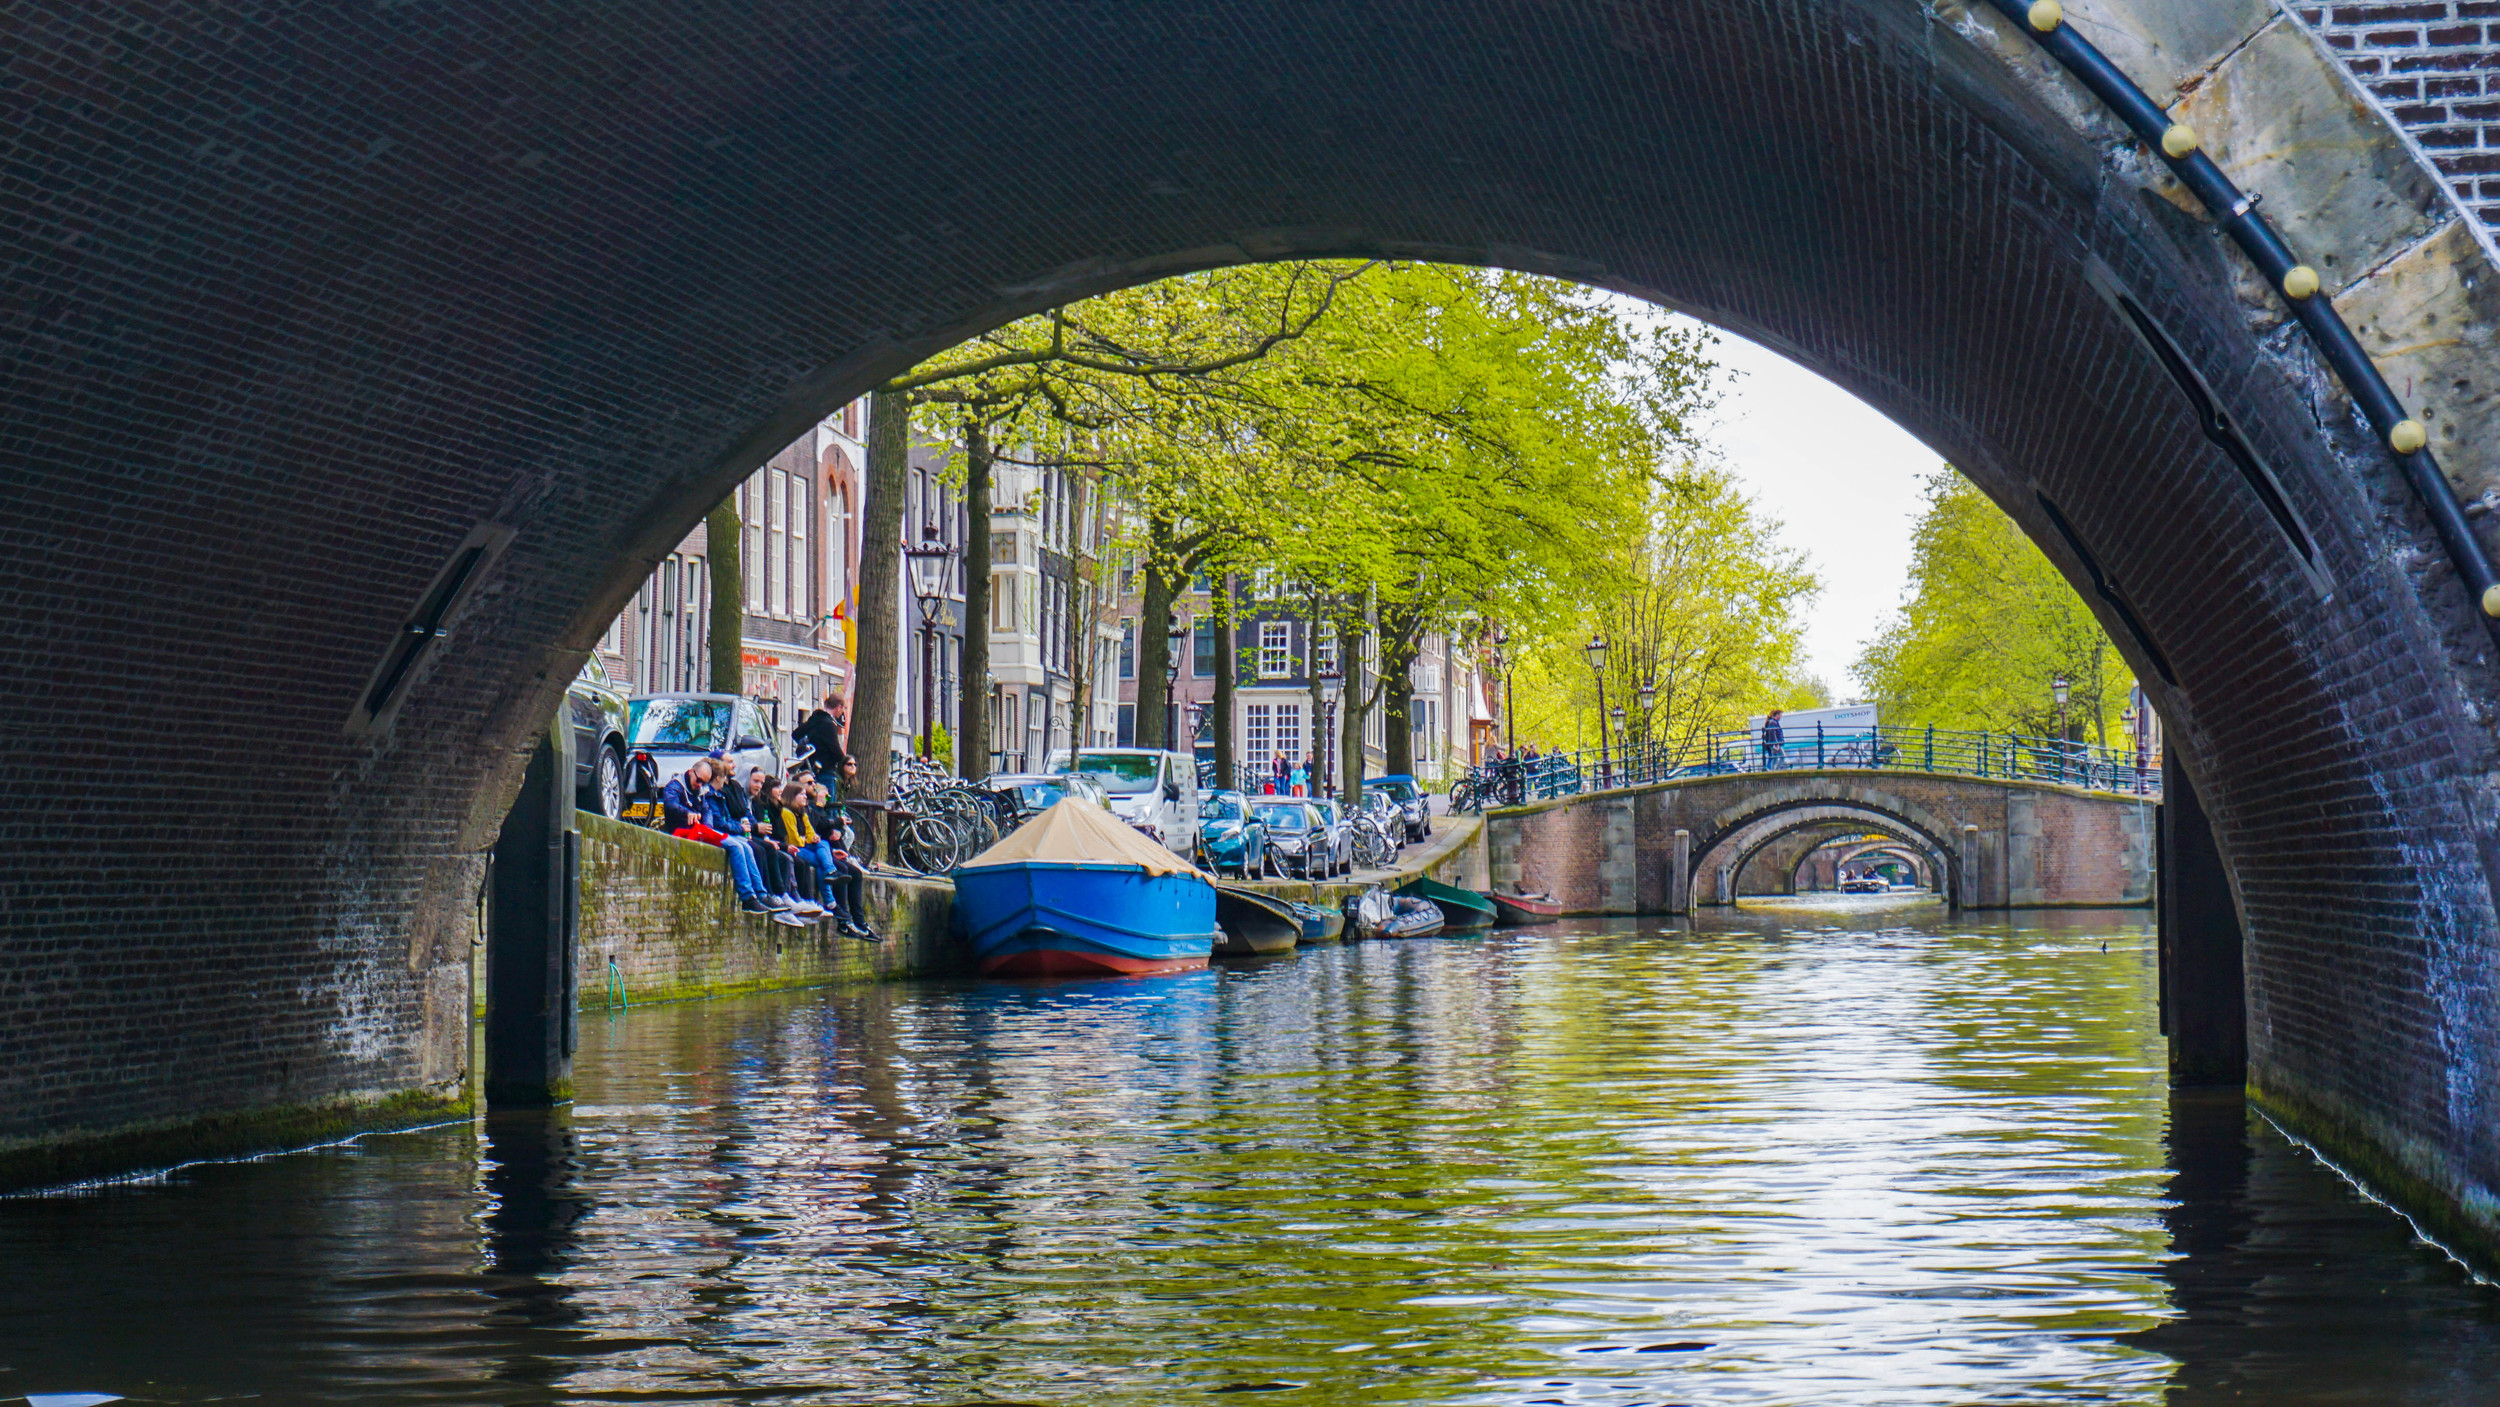 Sugar & Stamps: 10 Amazing Things You Must Do in Amsterdam